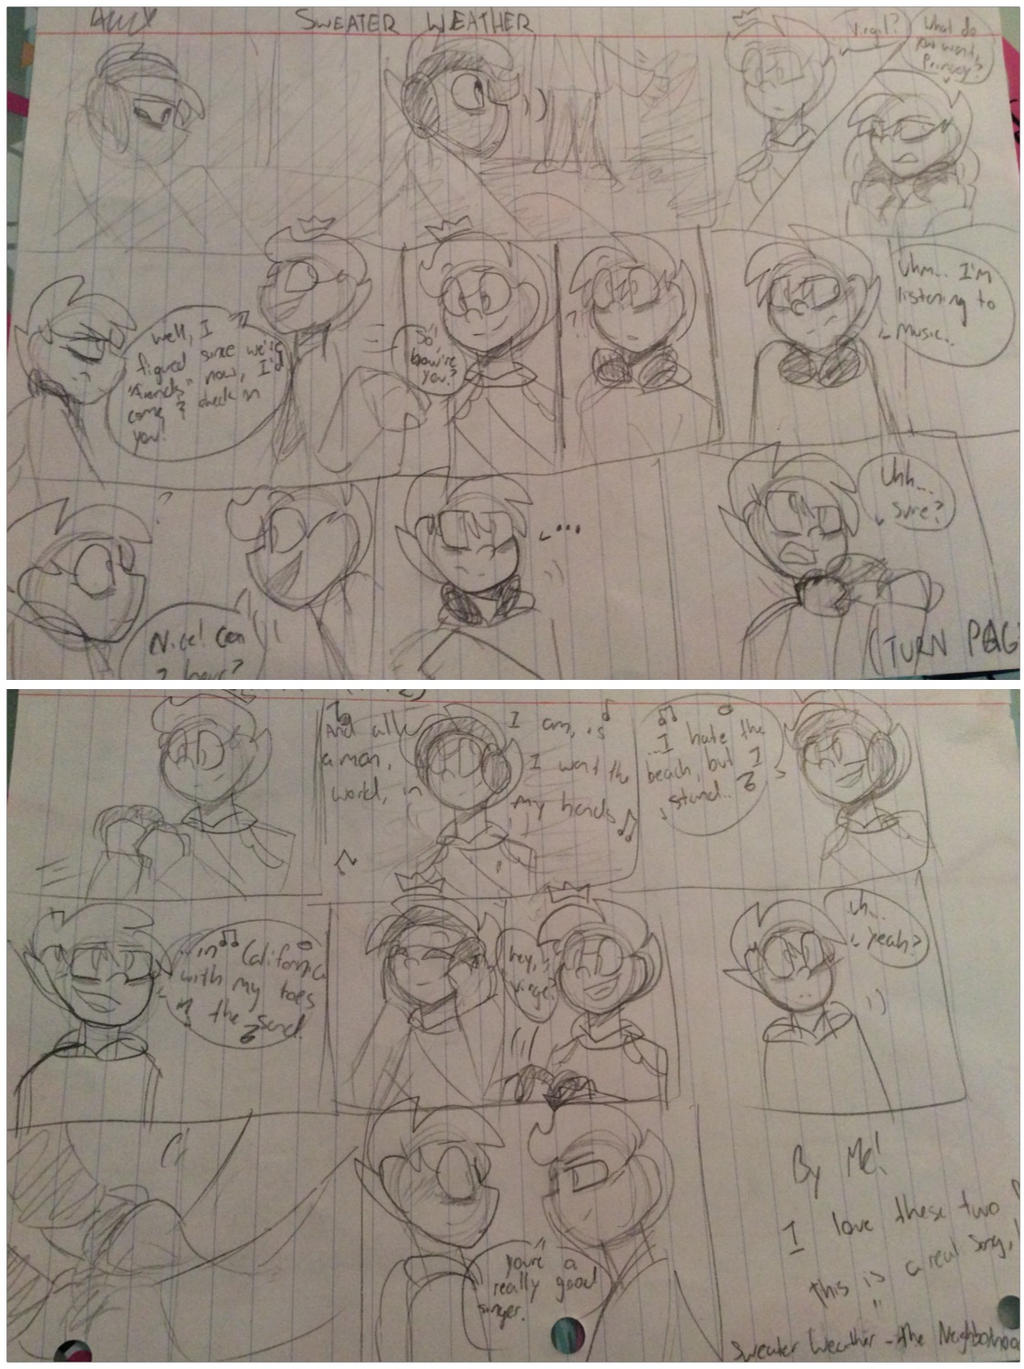 Sweater Weather (prinxiety comic) by cocoatwist on DeviantArt